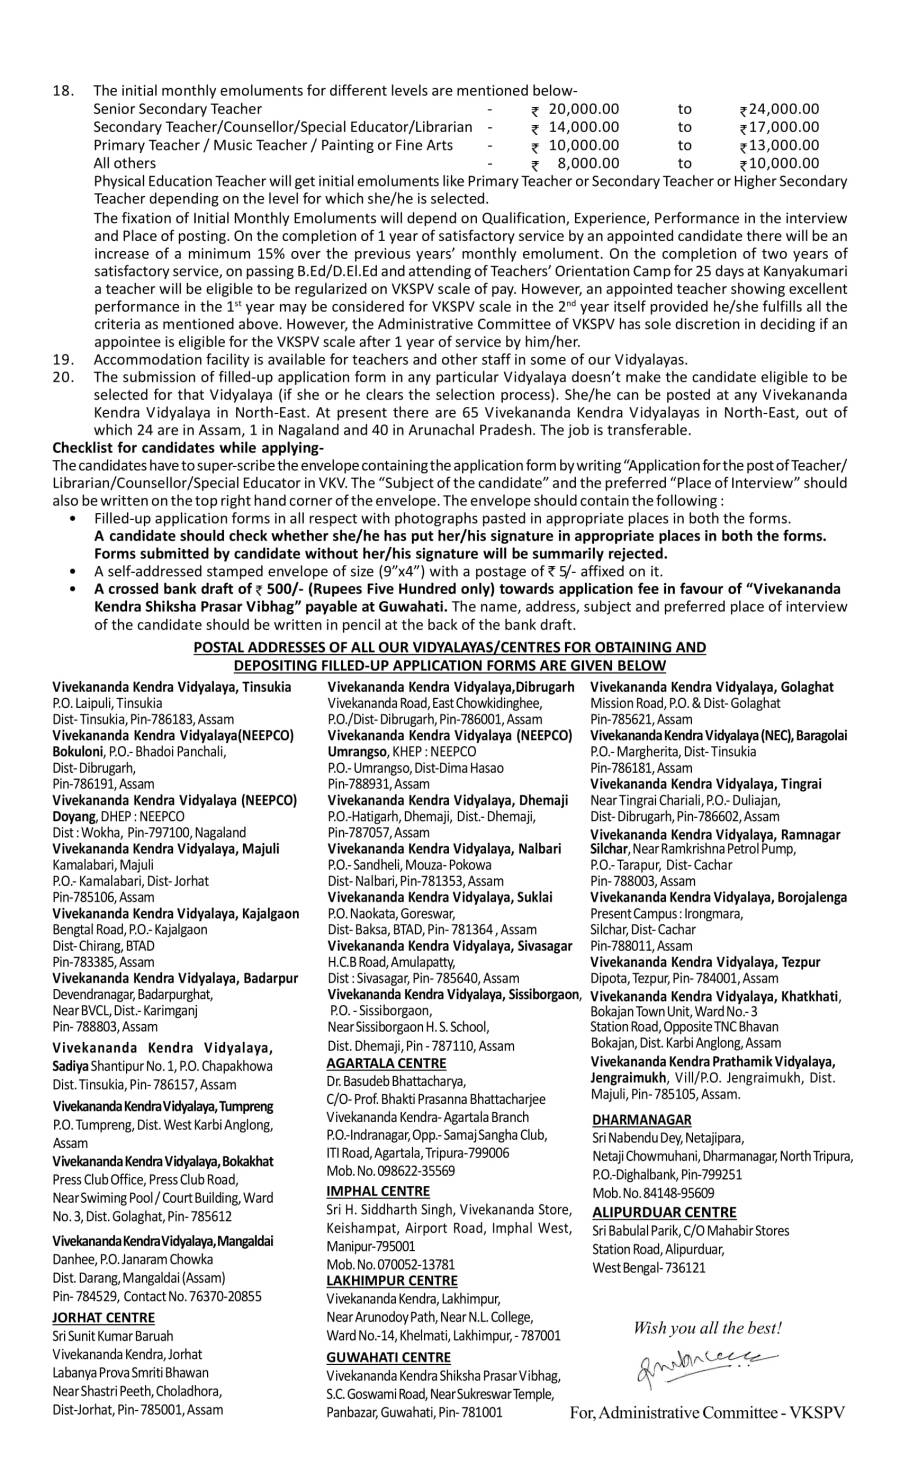 441024453-Application-Forms-and-Guidelines-for-Applicants-VKSPV-Teachers-Interview-2020-21-6.jpg